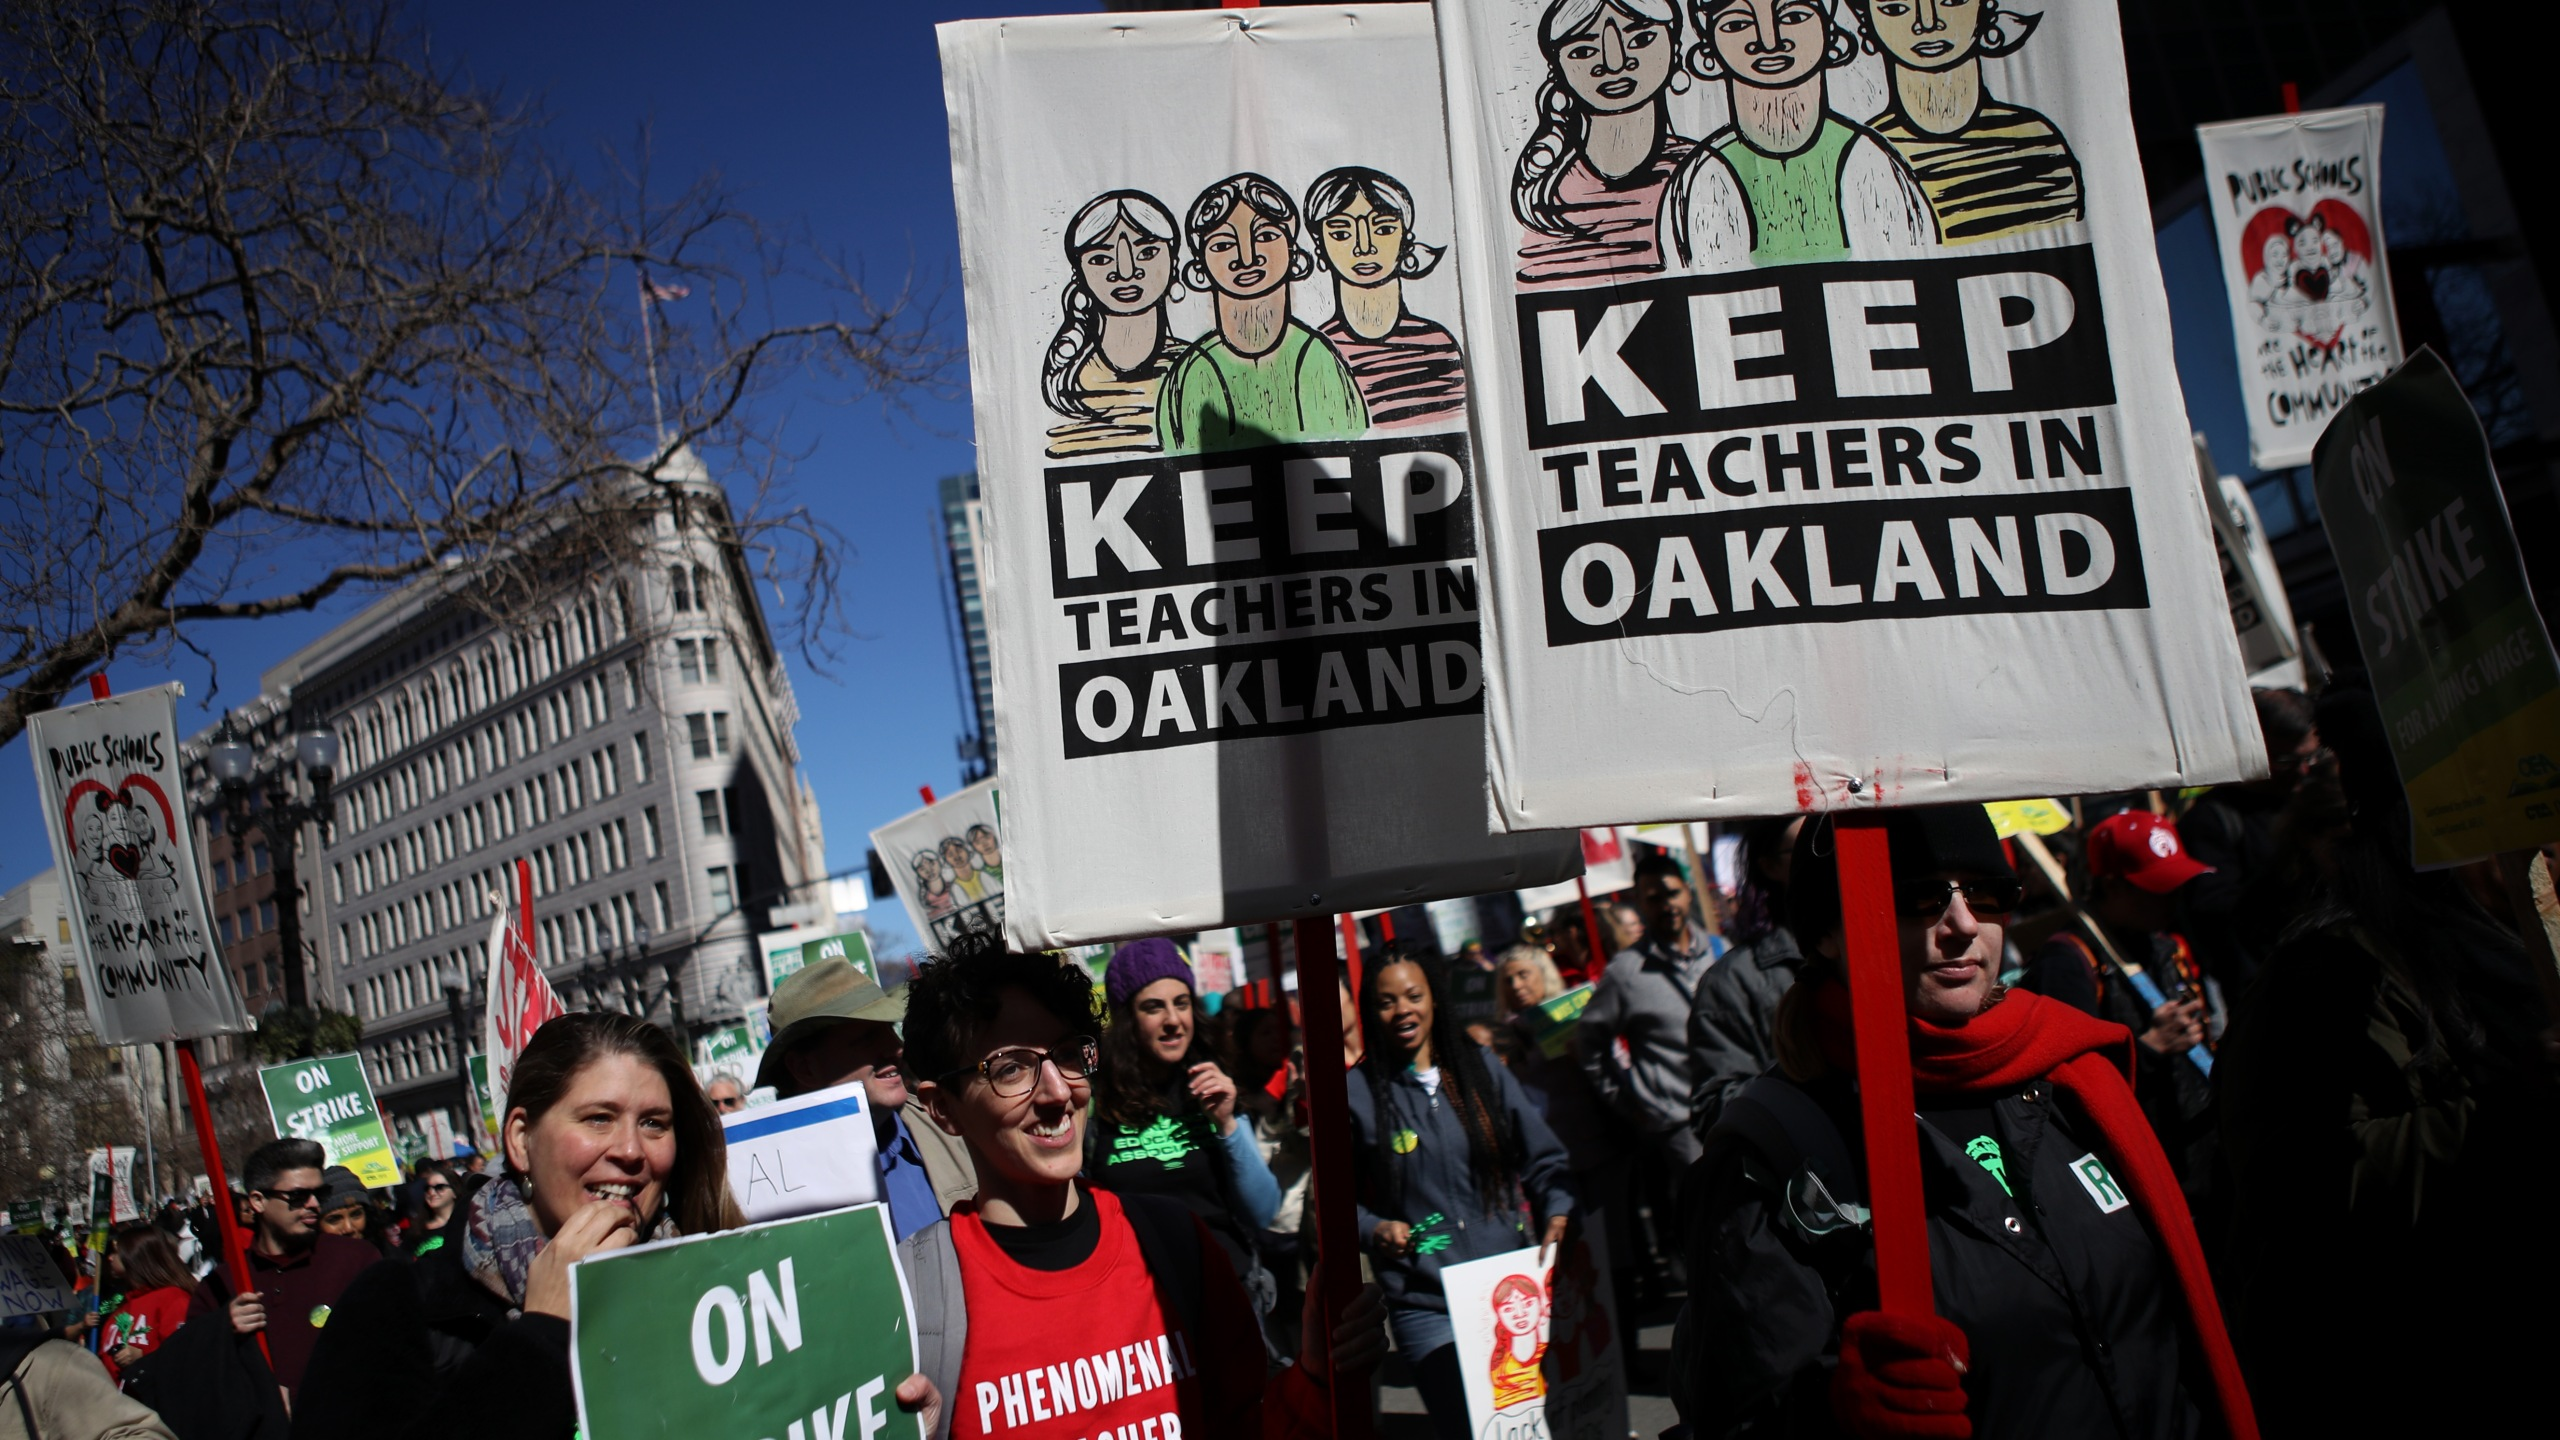 Oakland Unified School District students, teachers and parent carry signs as they march to the Oakland Unified School District headquarters on February 21, 2019 in Oakland, California. (Credit: Justin Sullivan/Getty Images)